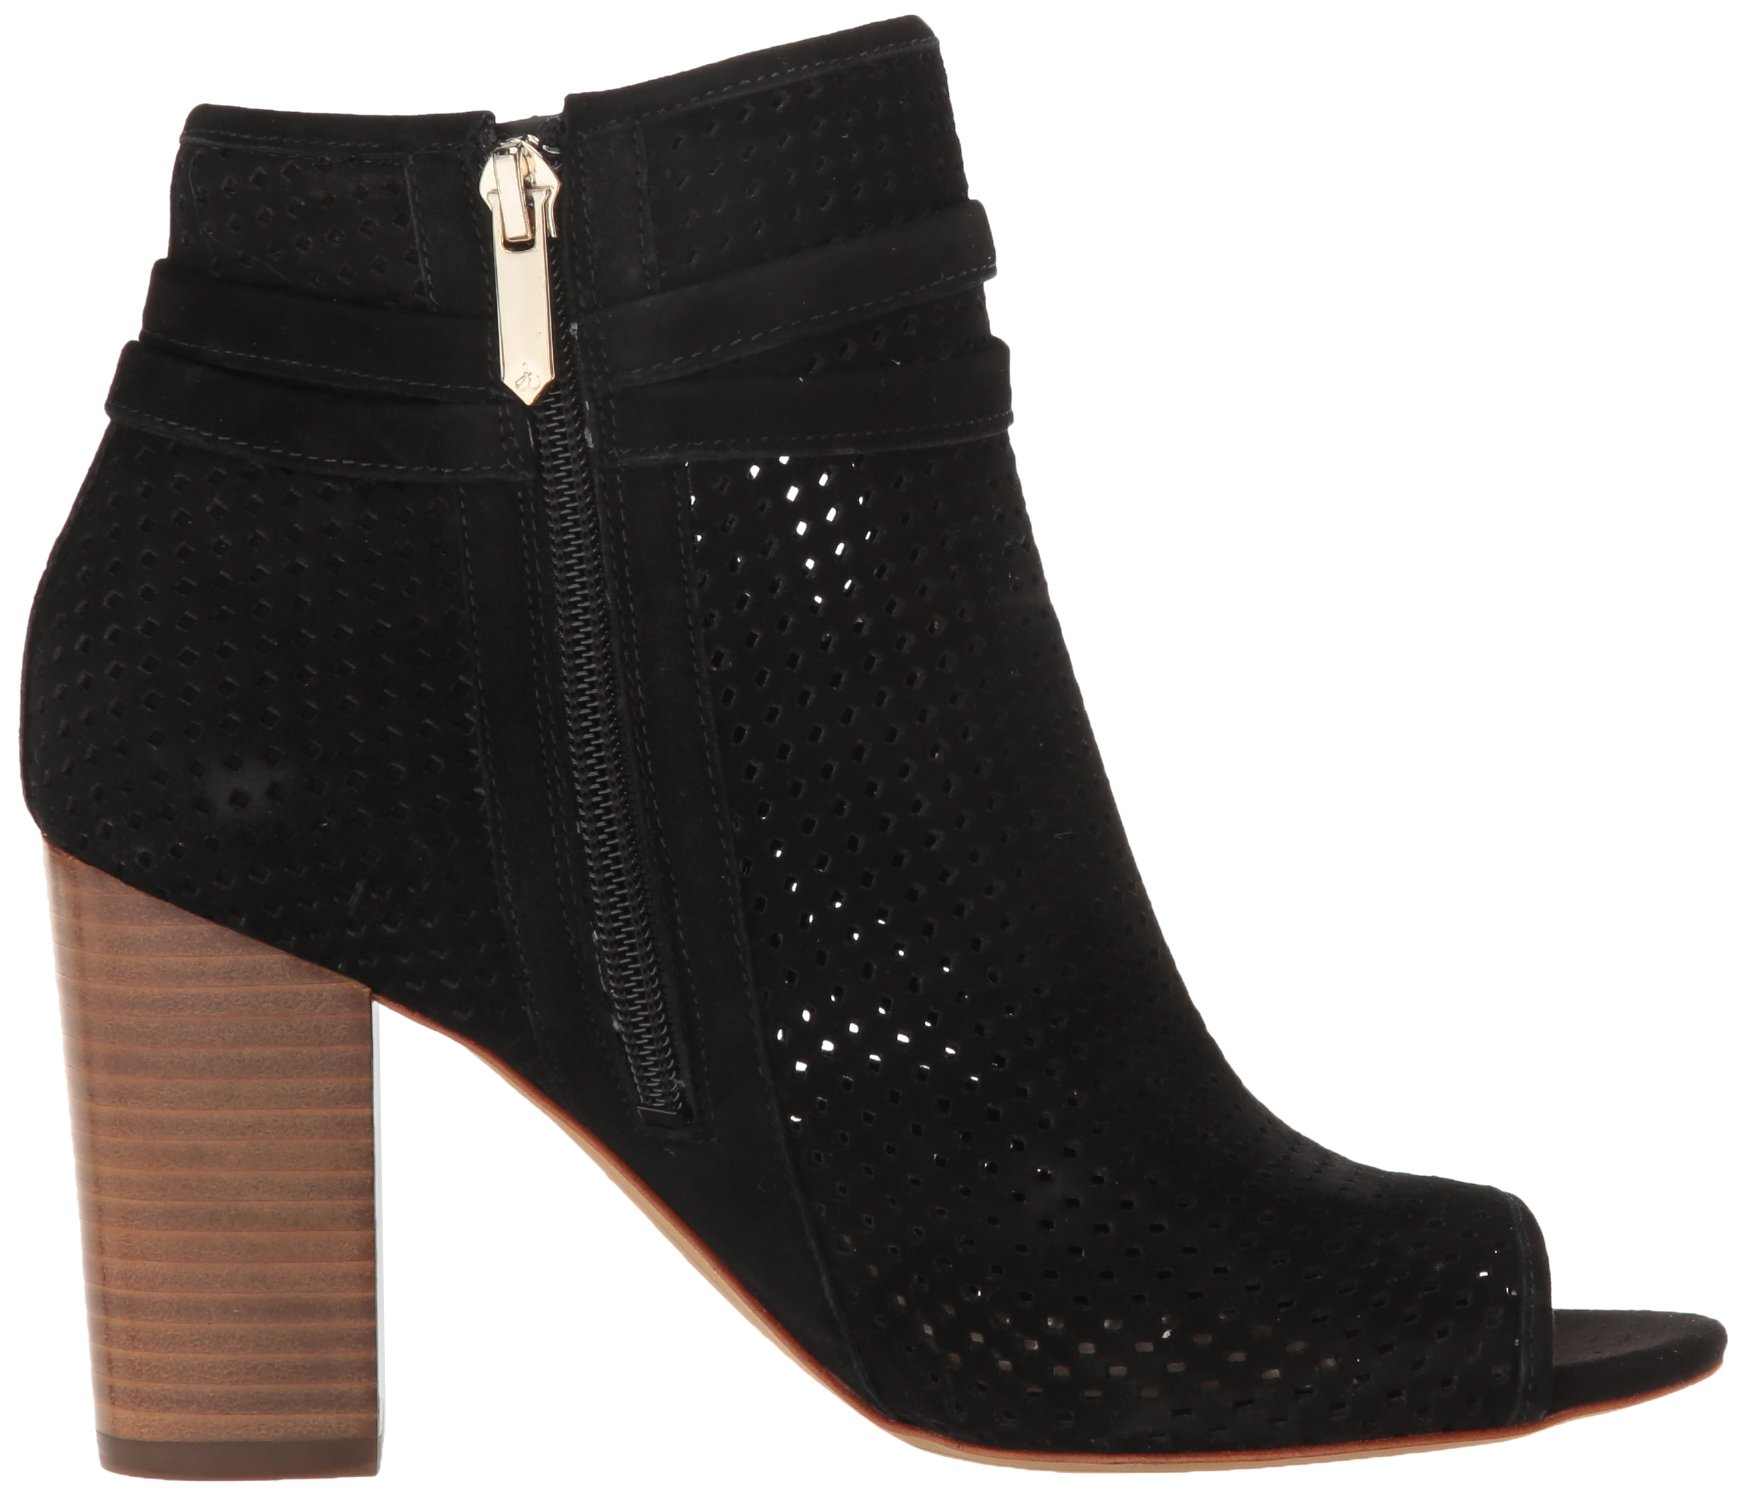 Sam Edelman Women's Ellery, Black, 8.5 M US by Sam Edelman (Image #7)